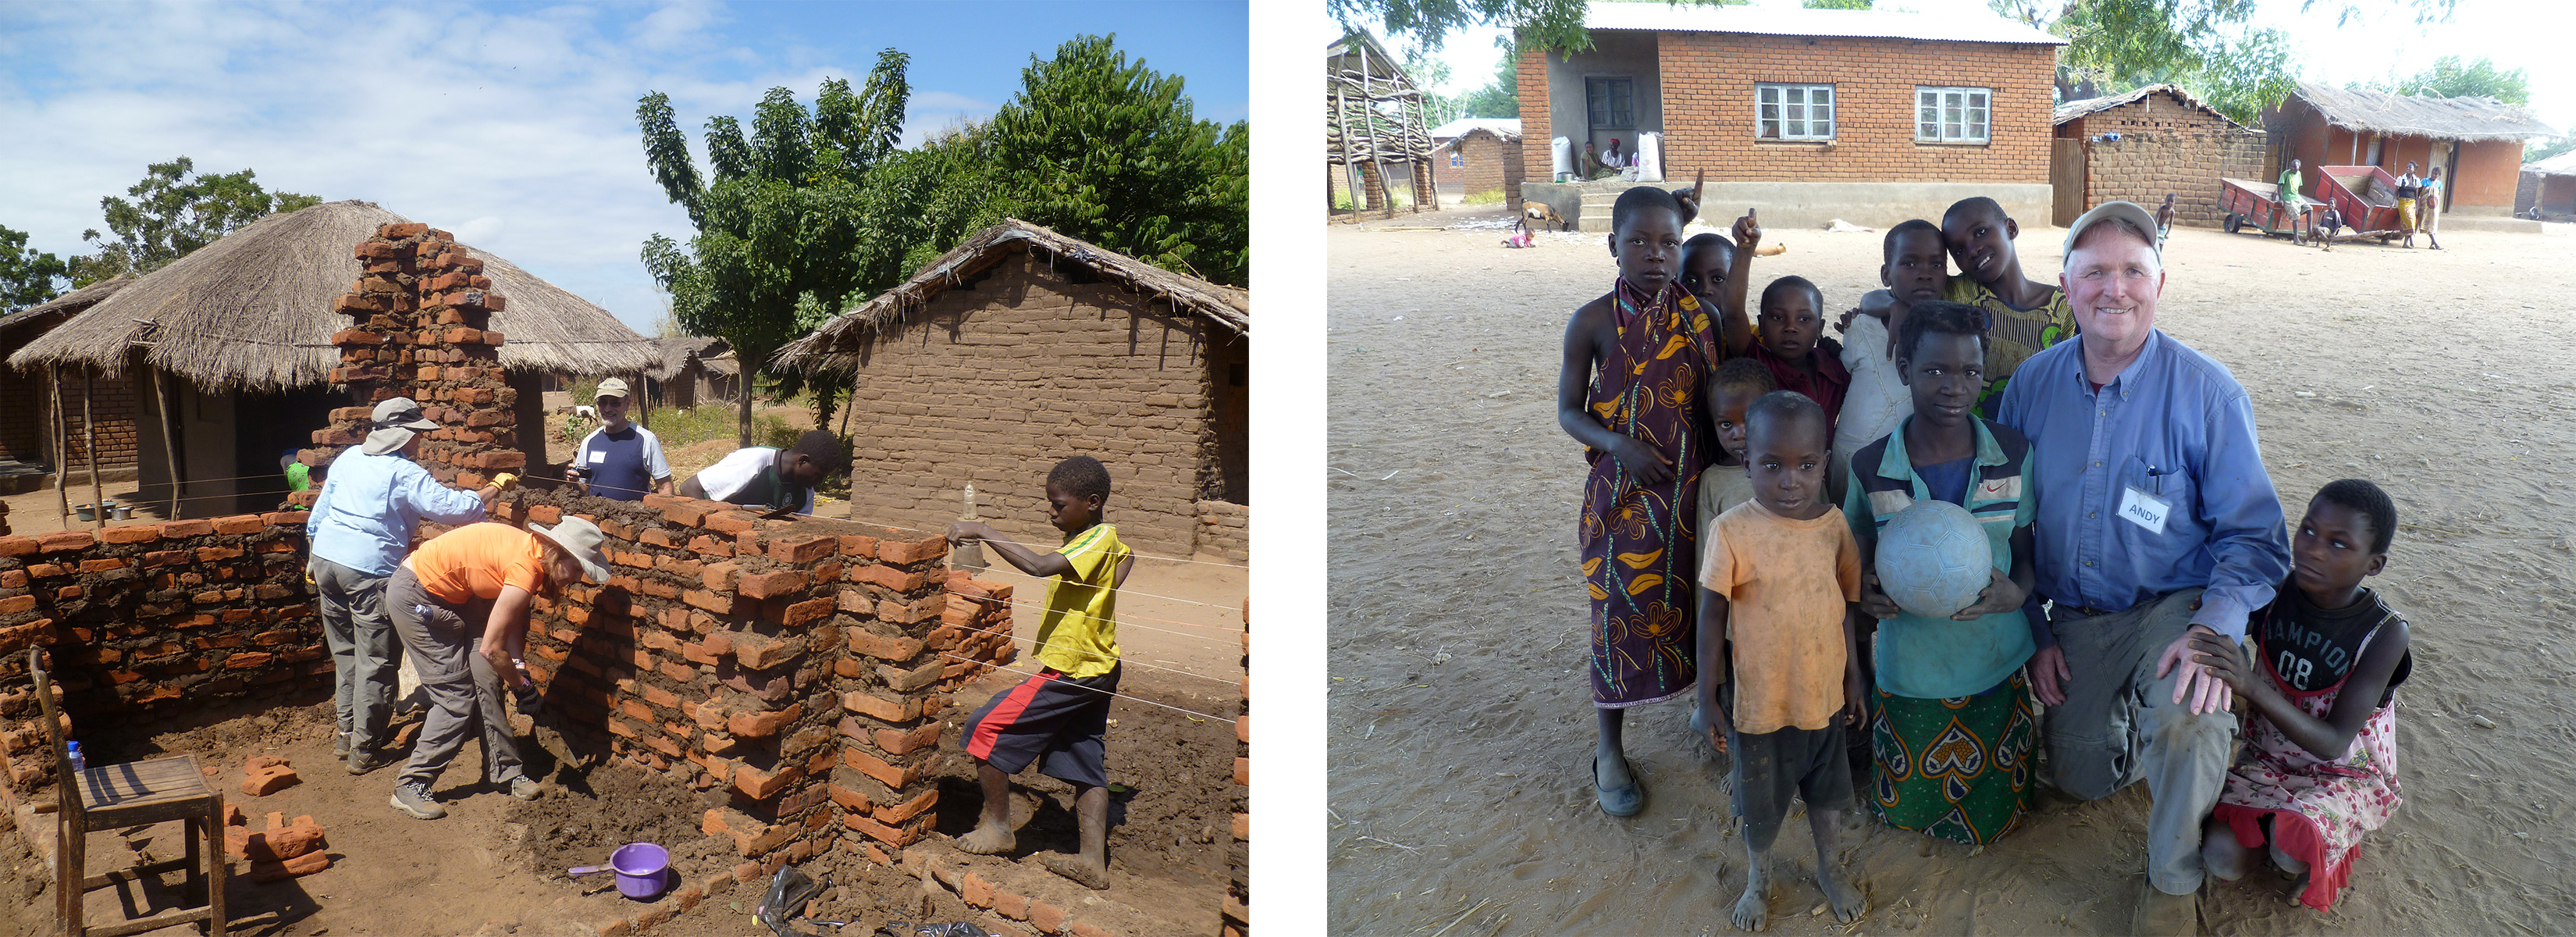 Home build in Malawi